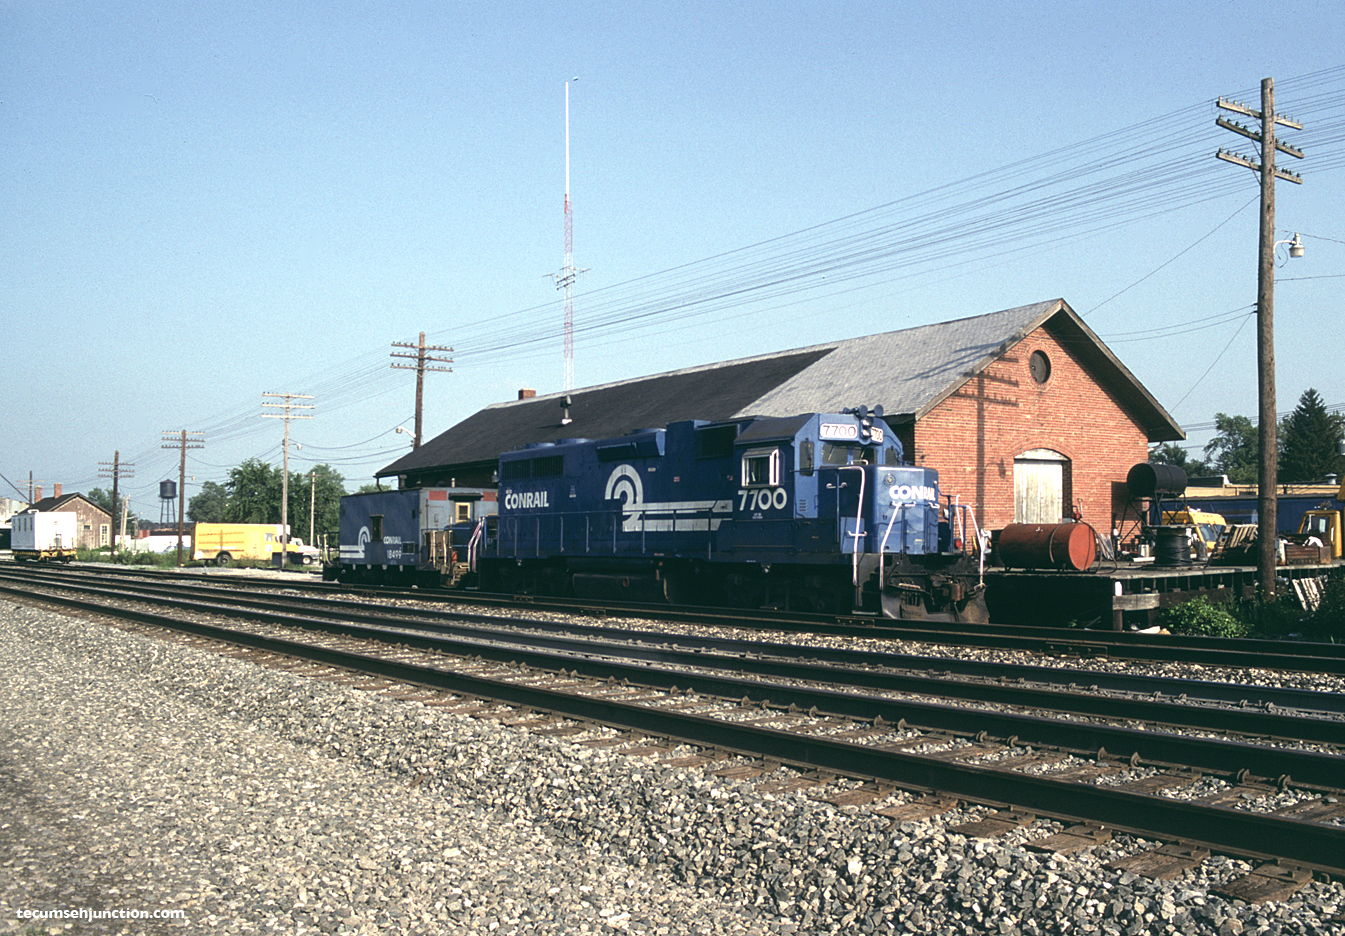 Conrail #7700 at the freight house, Bryan, OH